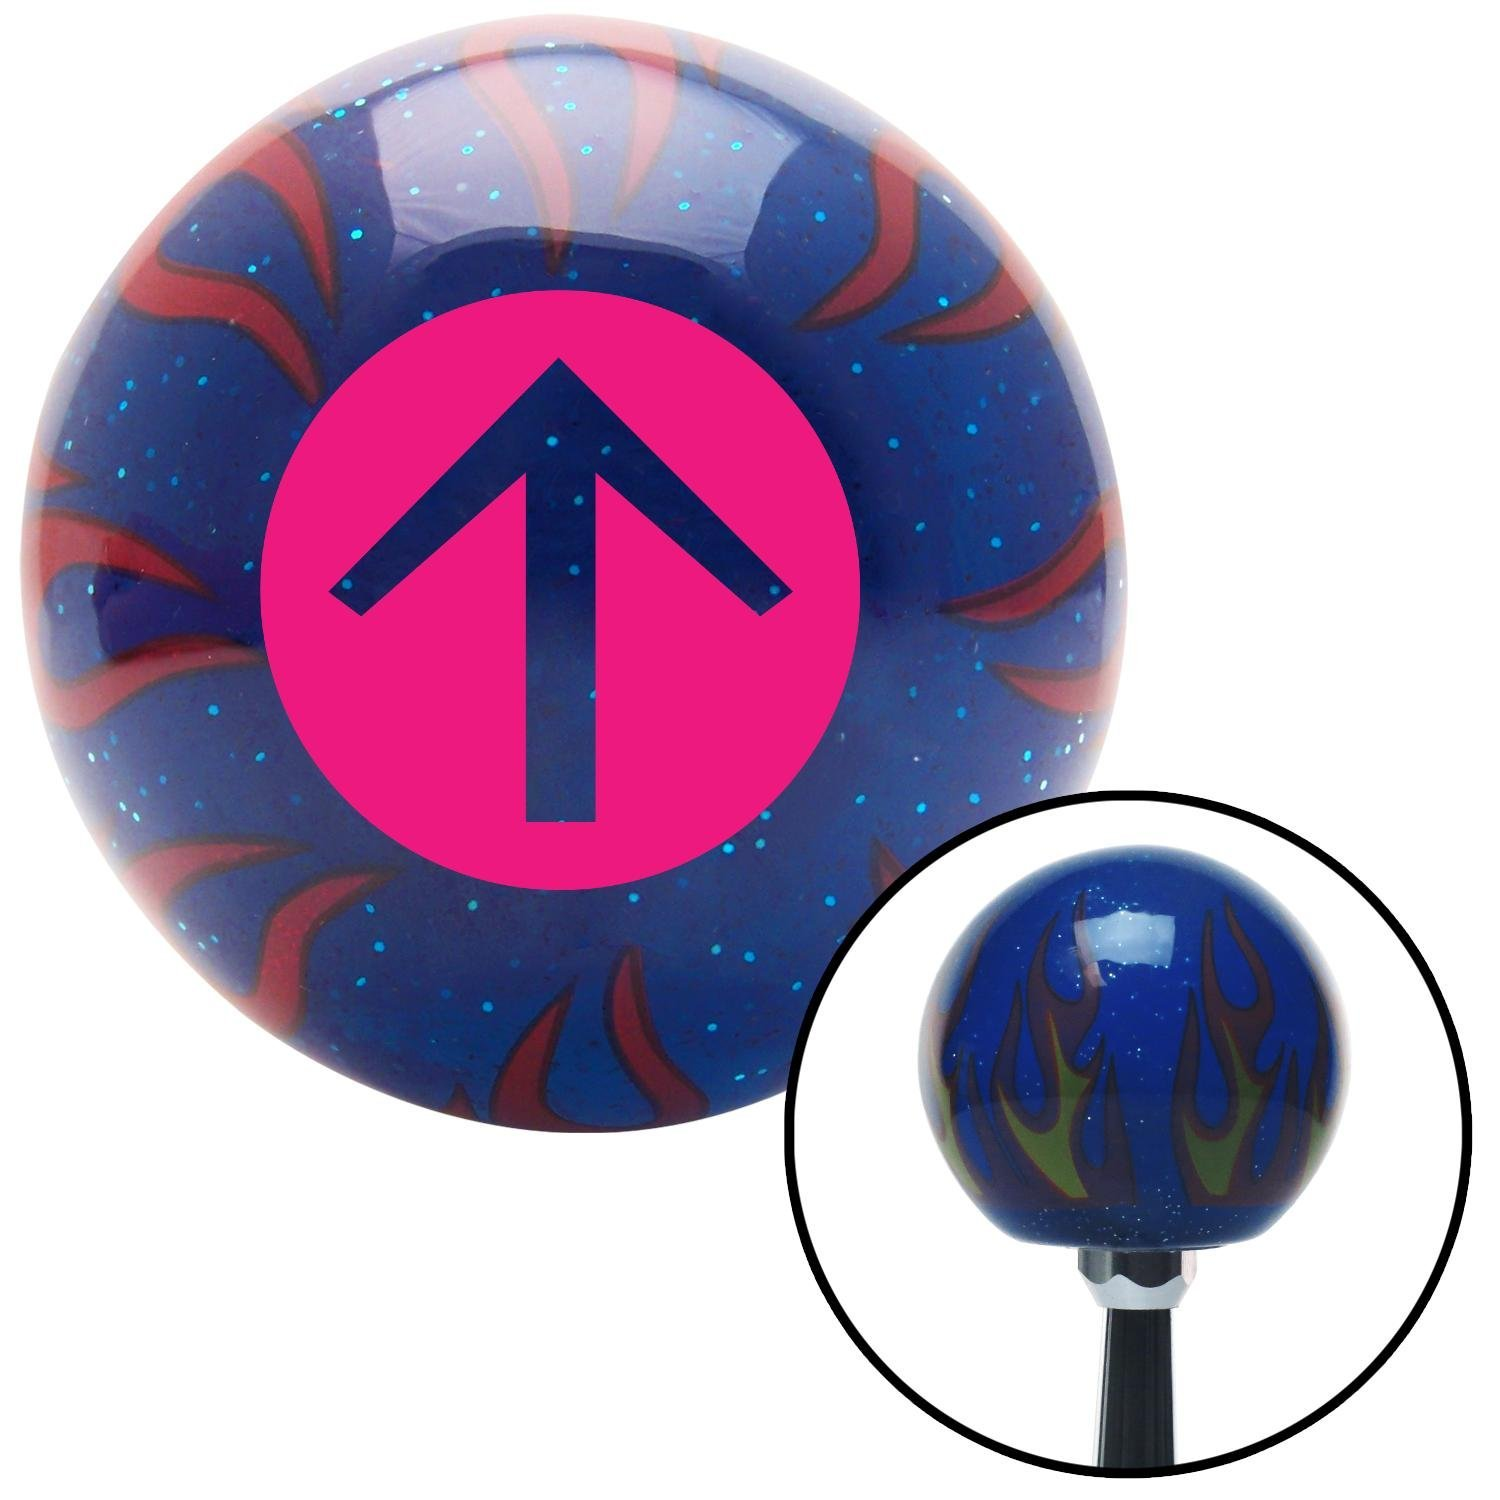 American Shifter 244408 Blue Flame Metal Flake Shift Knob with M16 x 1.5 Insert Pink Circle Directional Arrow Up